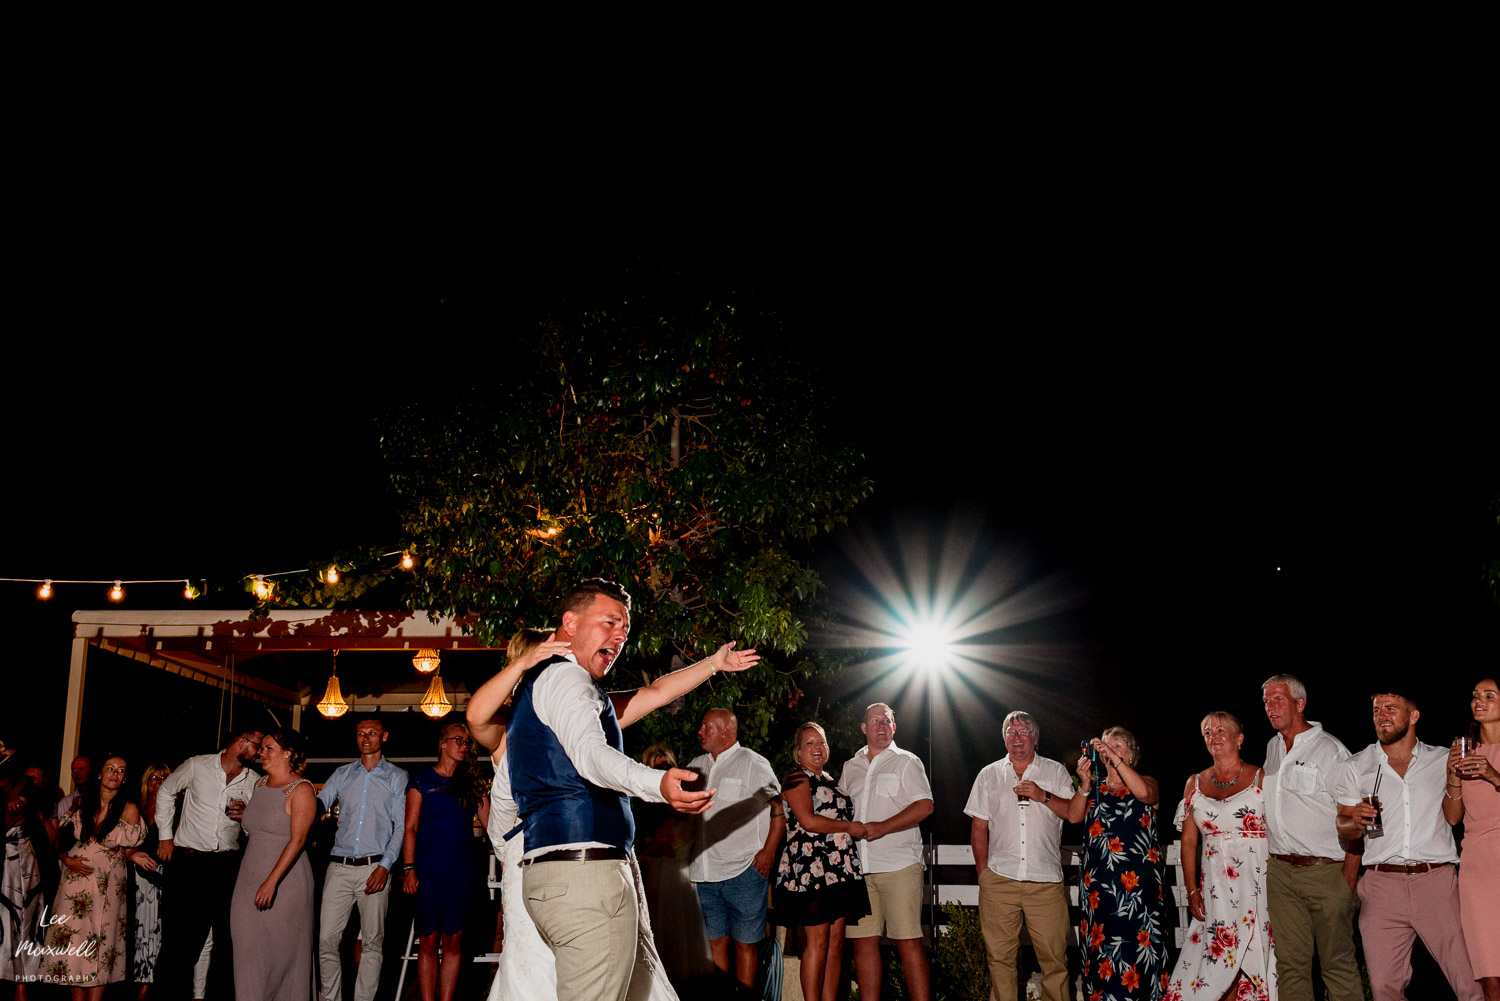 Dancing in greek wedding